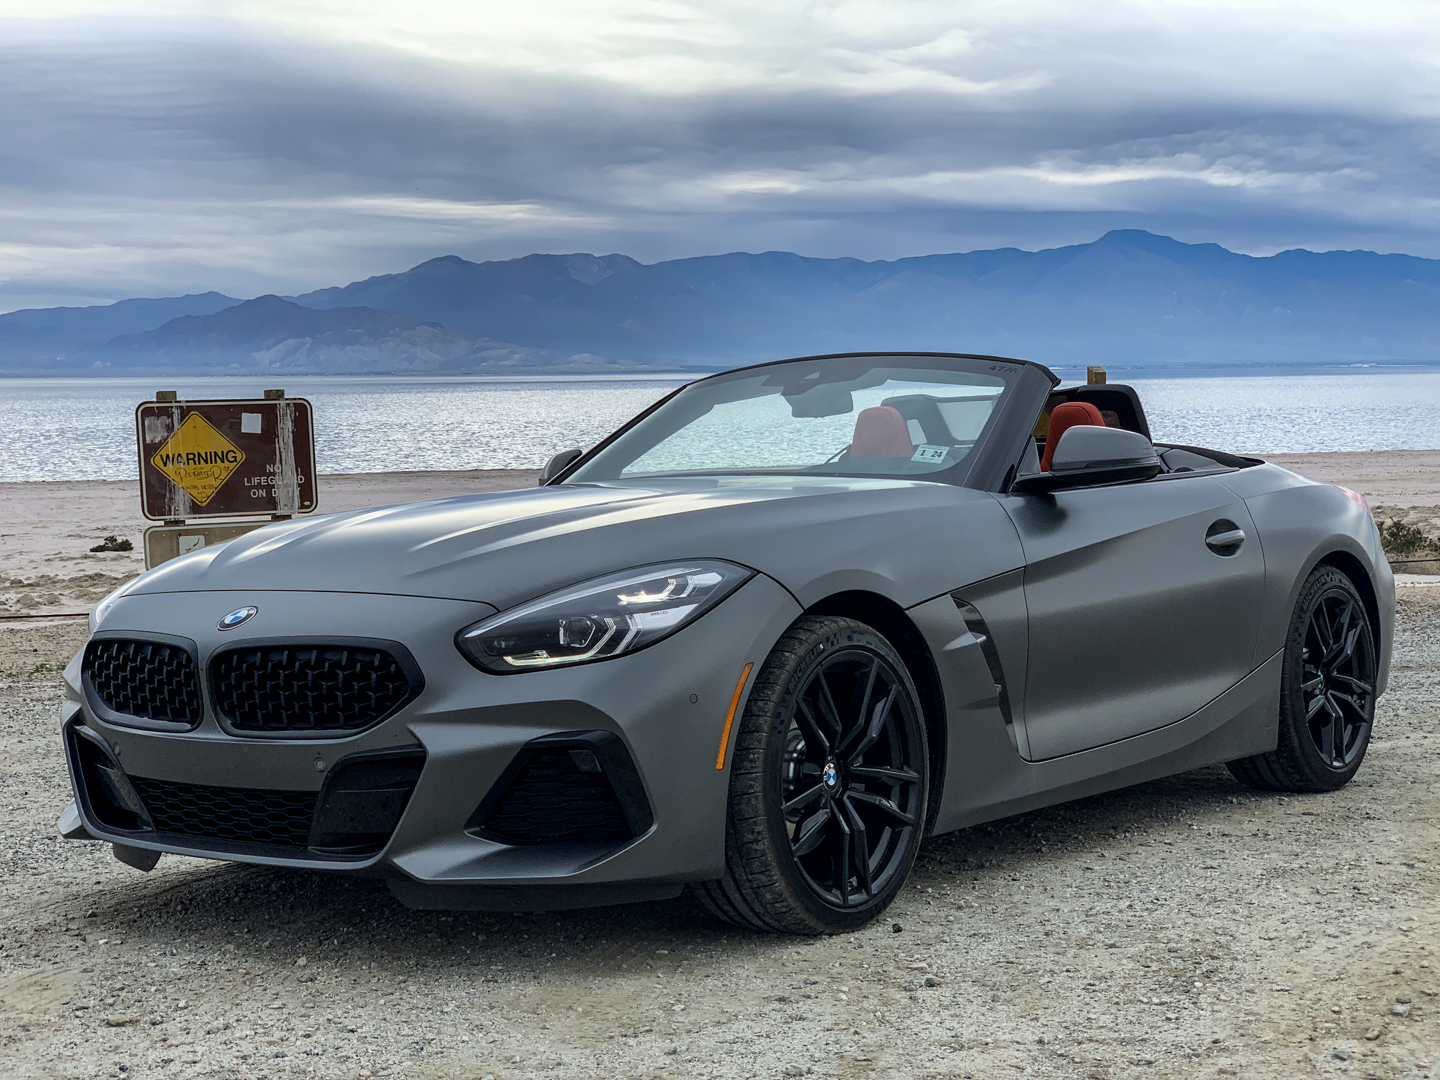 BMW Z4 sDrive30i Test Fest 3 of 25